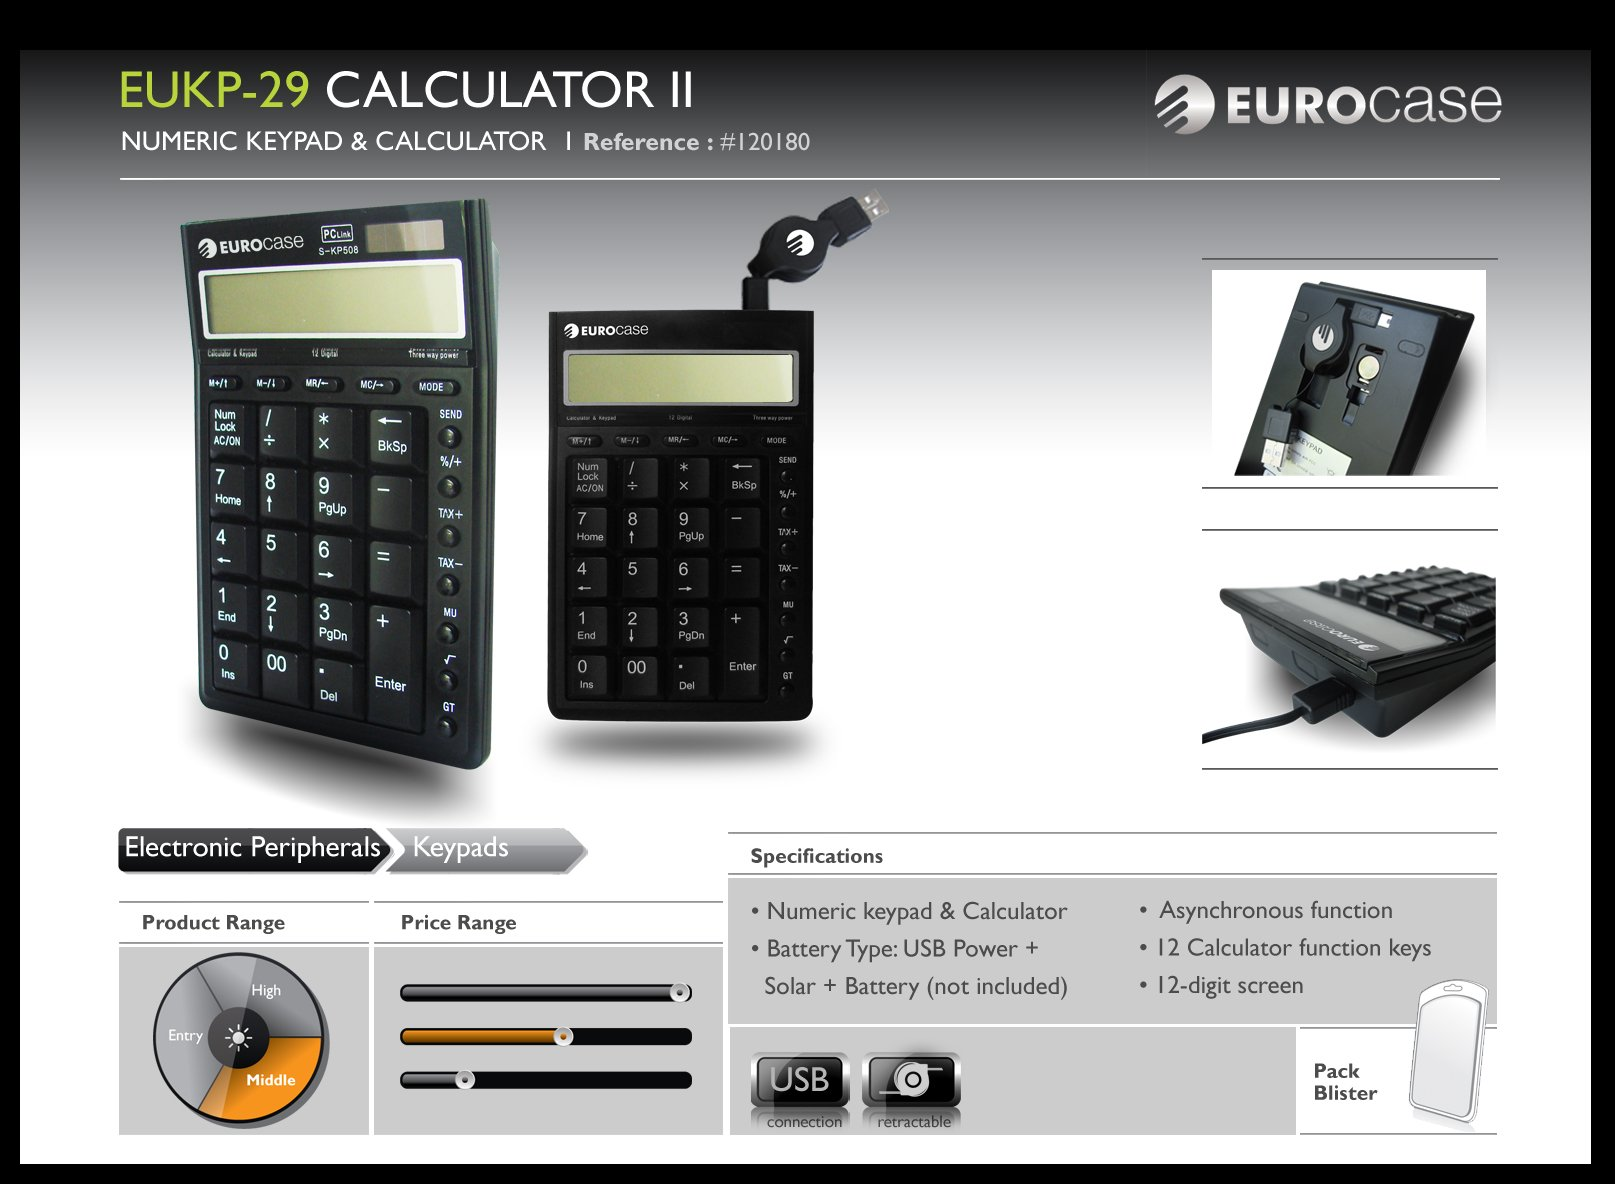 EuroCase EUKP-29 CALCULATOR II USB Numeric Keypad with calculator functions by EuroCase